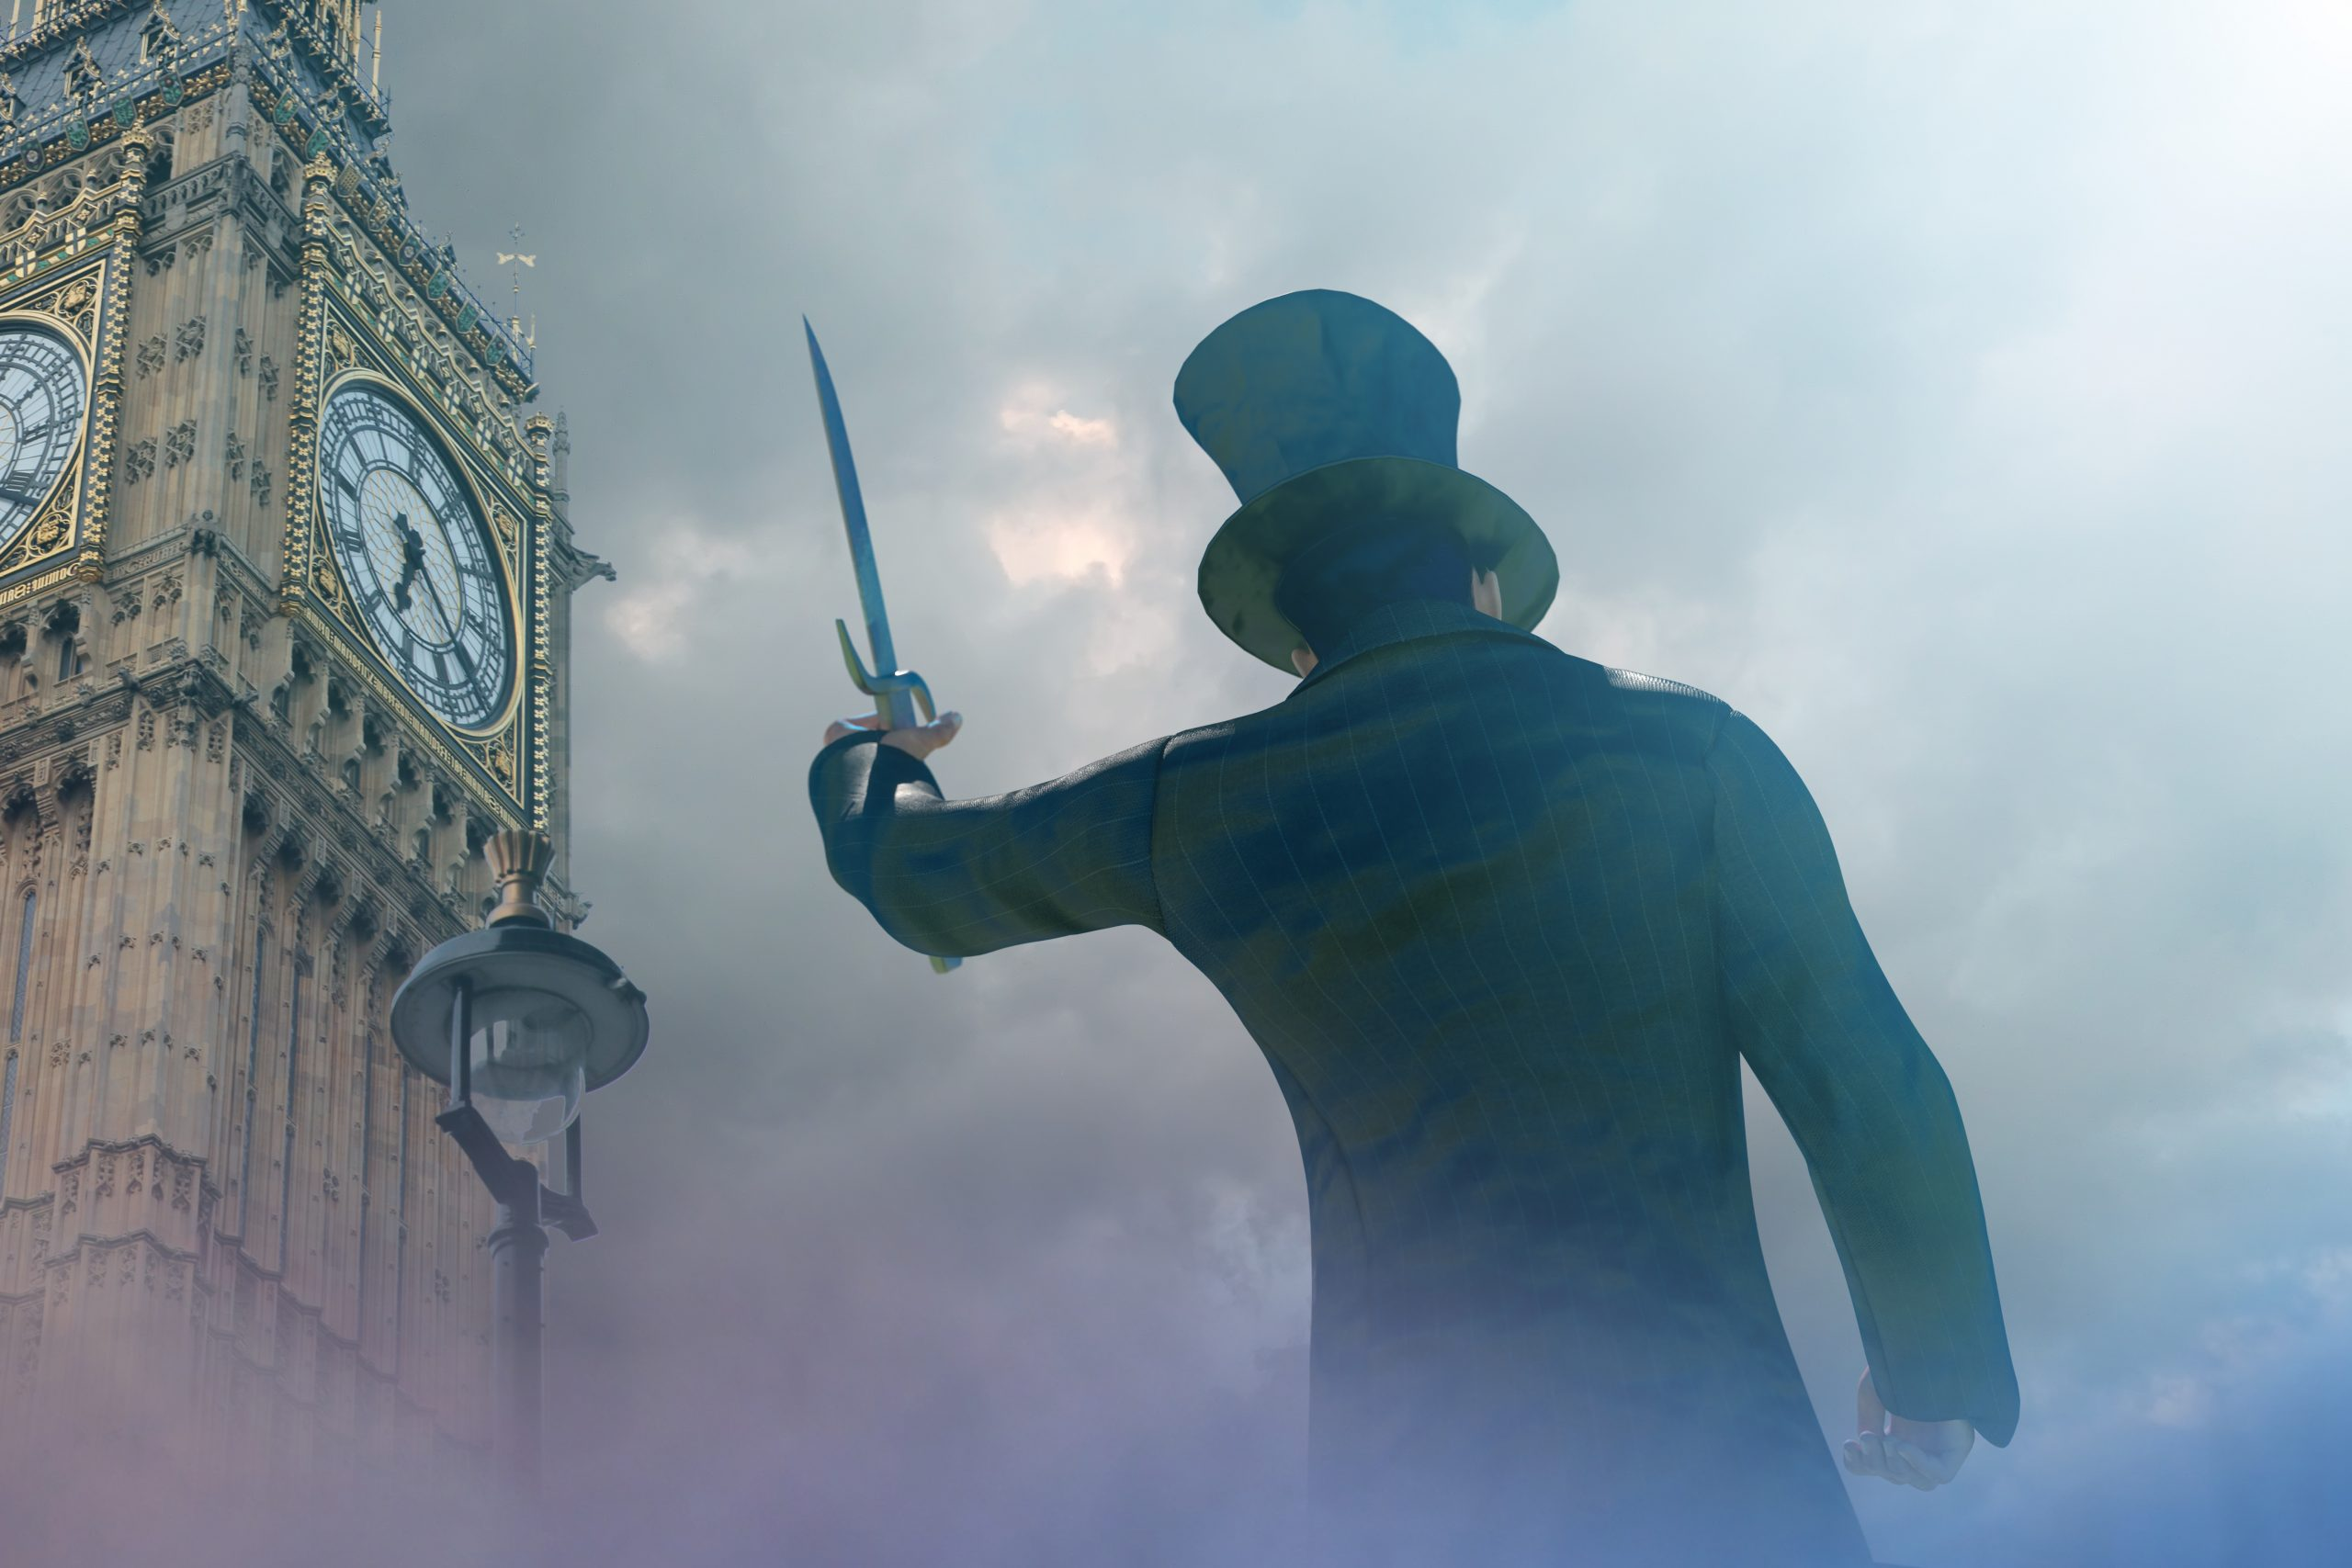 Jack the ripper in London